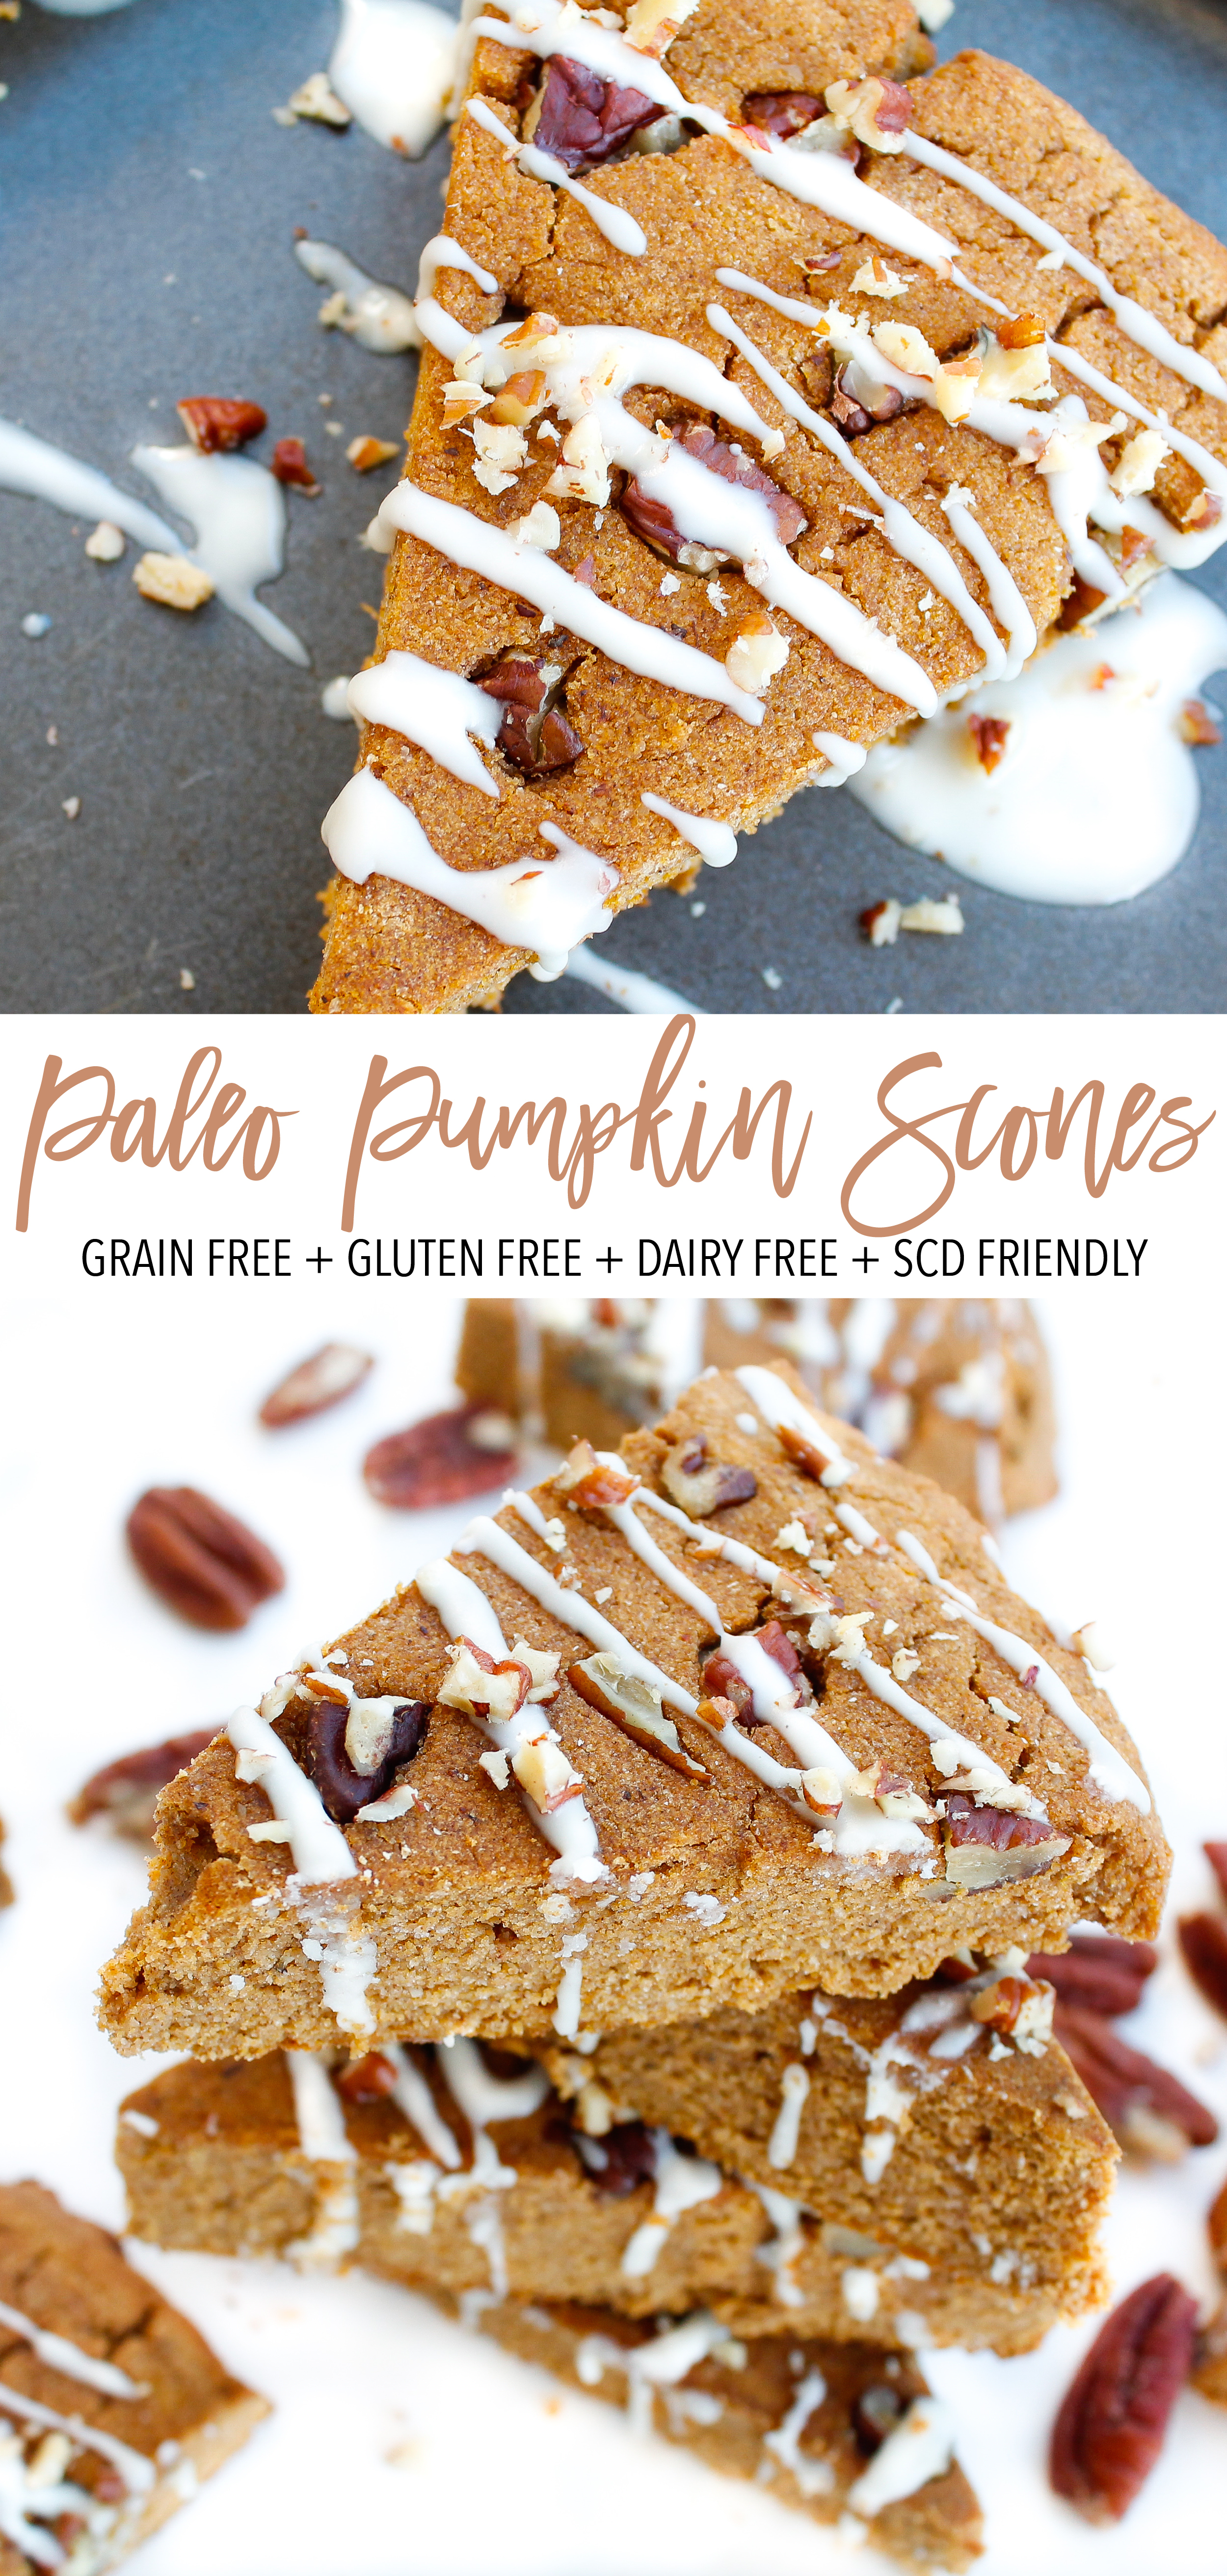 These paleo pumpkin scones are the perfect way to kick off the autumn season! Full of healthy fats and protein they're sure to fuel your whole morning. They're grain free, gluten free, dairy free, refined sugar free and Specific Carbohydrate Diet friendly! // plentyandwell.com // #paleoscones #paleopumpkinscones